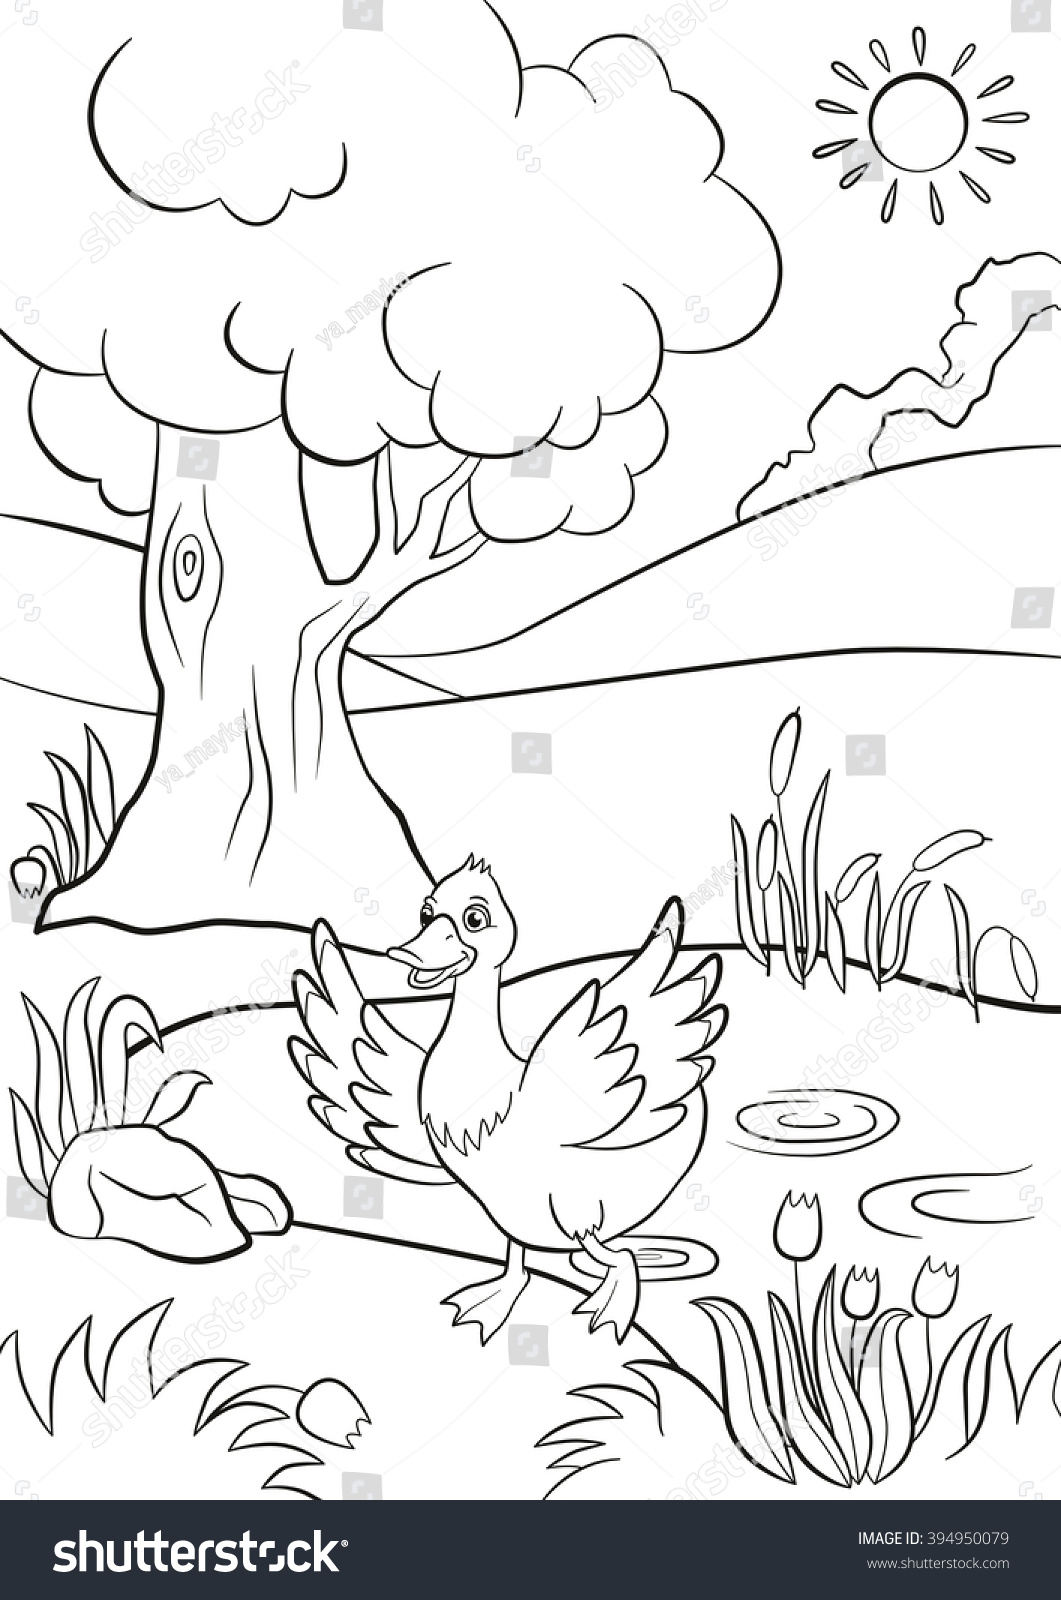 Coloring pages trees and flowers - Coloring Pages Cute Duck Runs From The Pond There Are Tree Flowers And